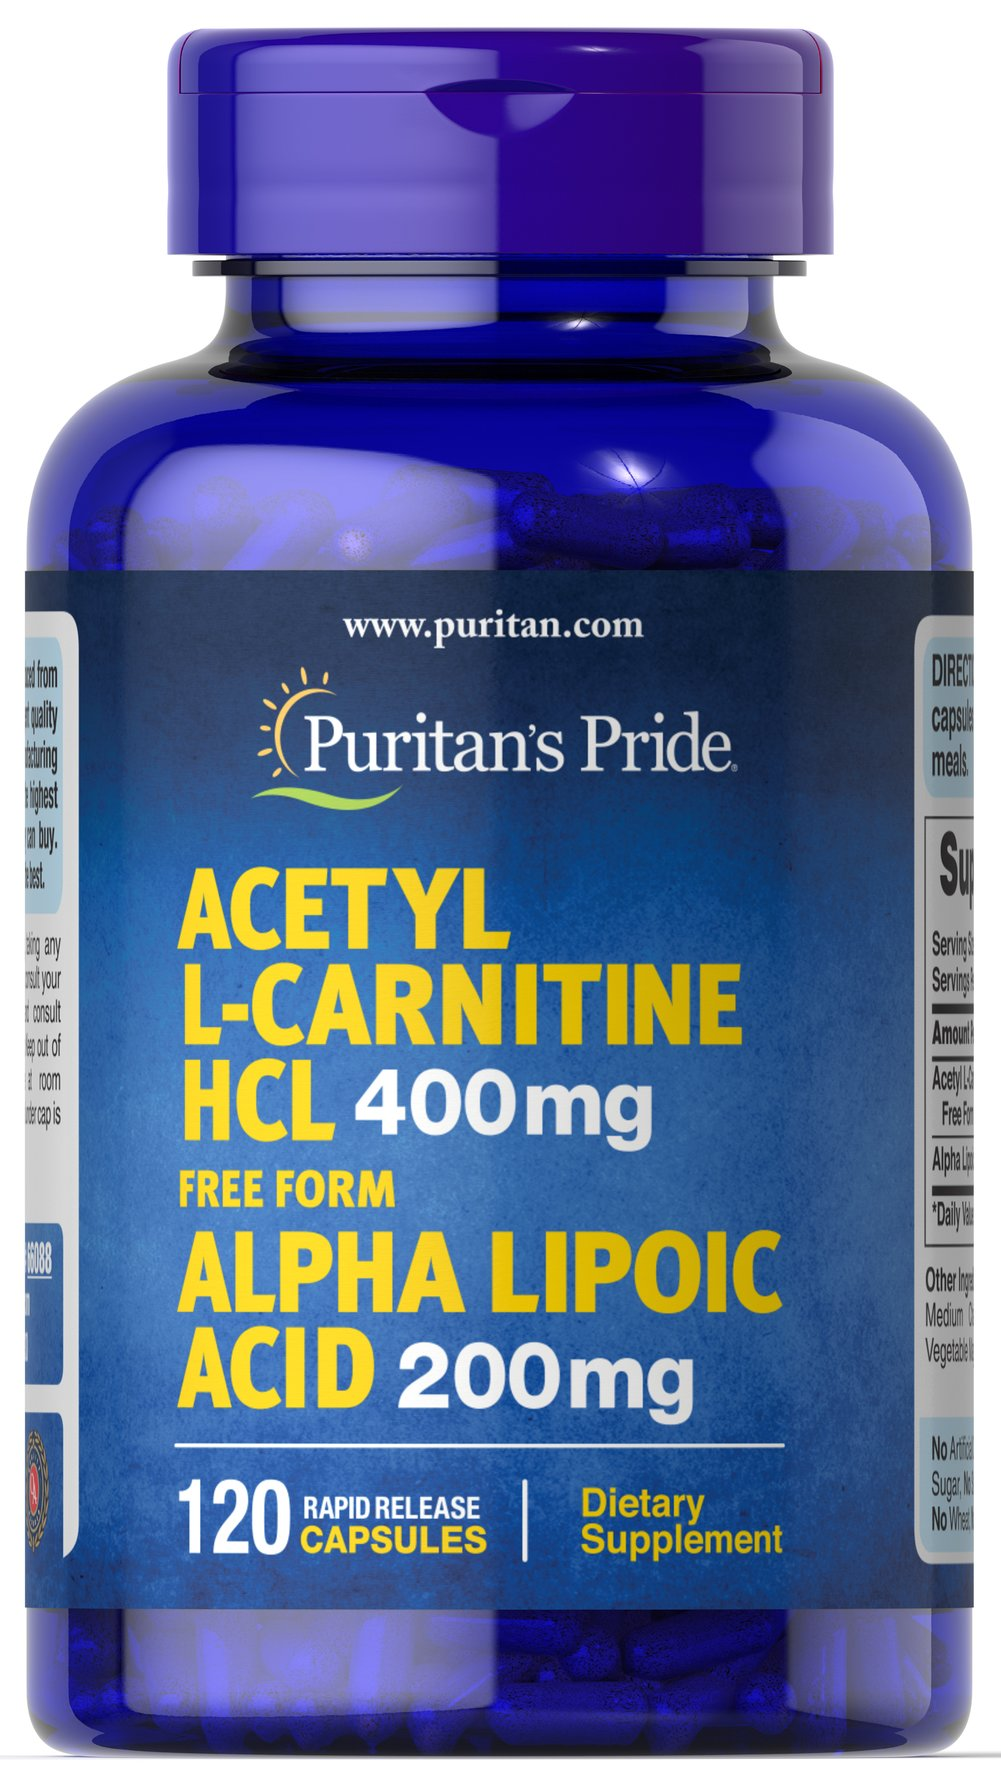 Acetyl L-Carnitine 400 mg with Alpha Lipoic Acid 200 mg <p>Supports Antioxidant Health**</p><p>Supports Metabolic Functioning**</p><p>Use as part of your healthy aging program**</p><p>As we age, our cells are less able to counteract the cell-damaging effects of free radicals and oxidative stress. Oxidative stress can lead to the premature aging of cells.</p> 120 Capsules 400 mg/200 mg $33.99